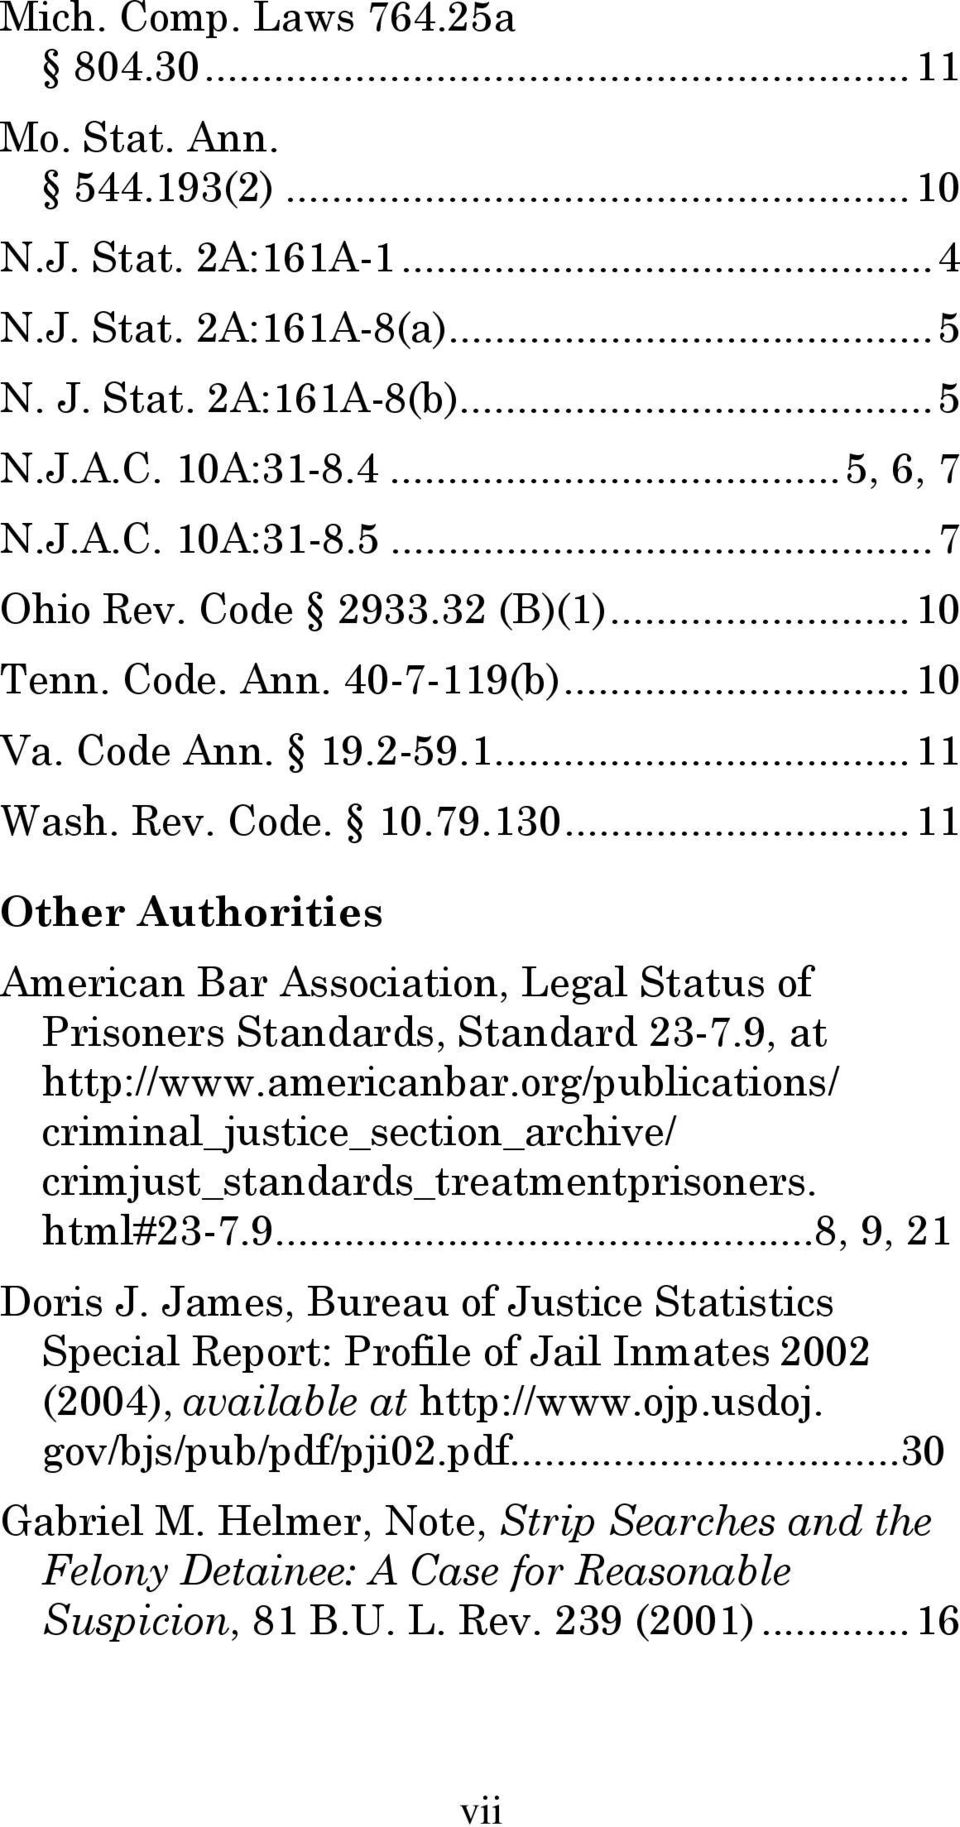 ..11 Other Authorities American Bar Association, Legal Status of Prisoners Standards, Standard 23-7.9, at http://www.americanbar.